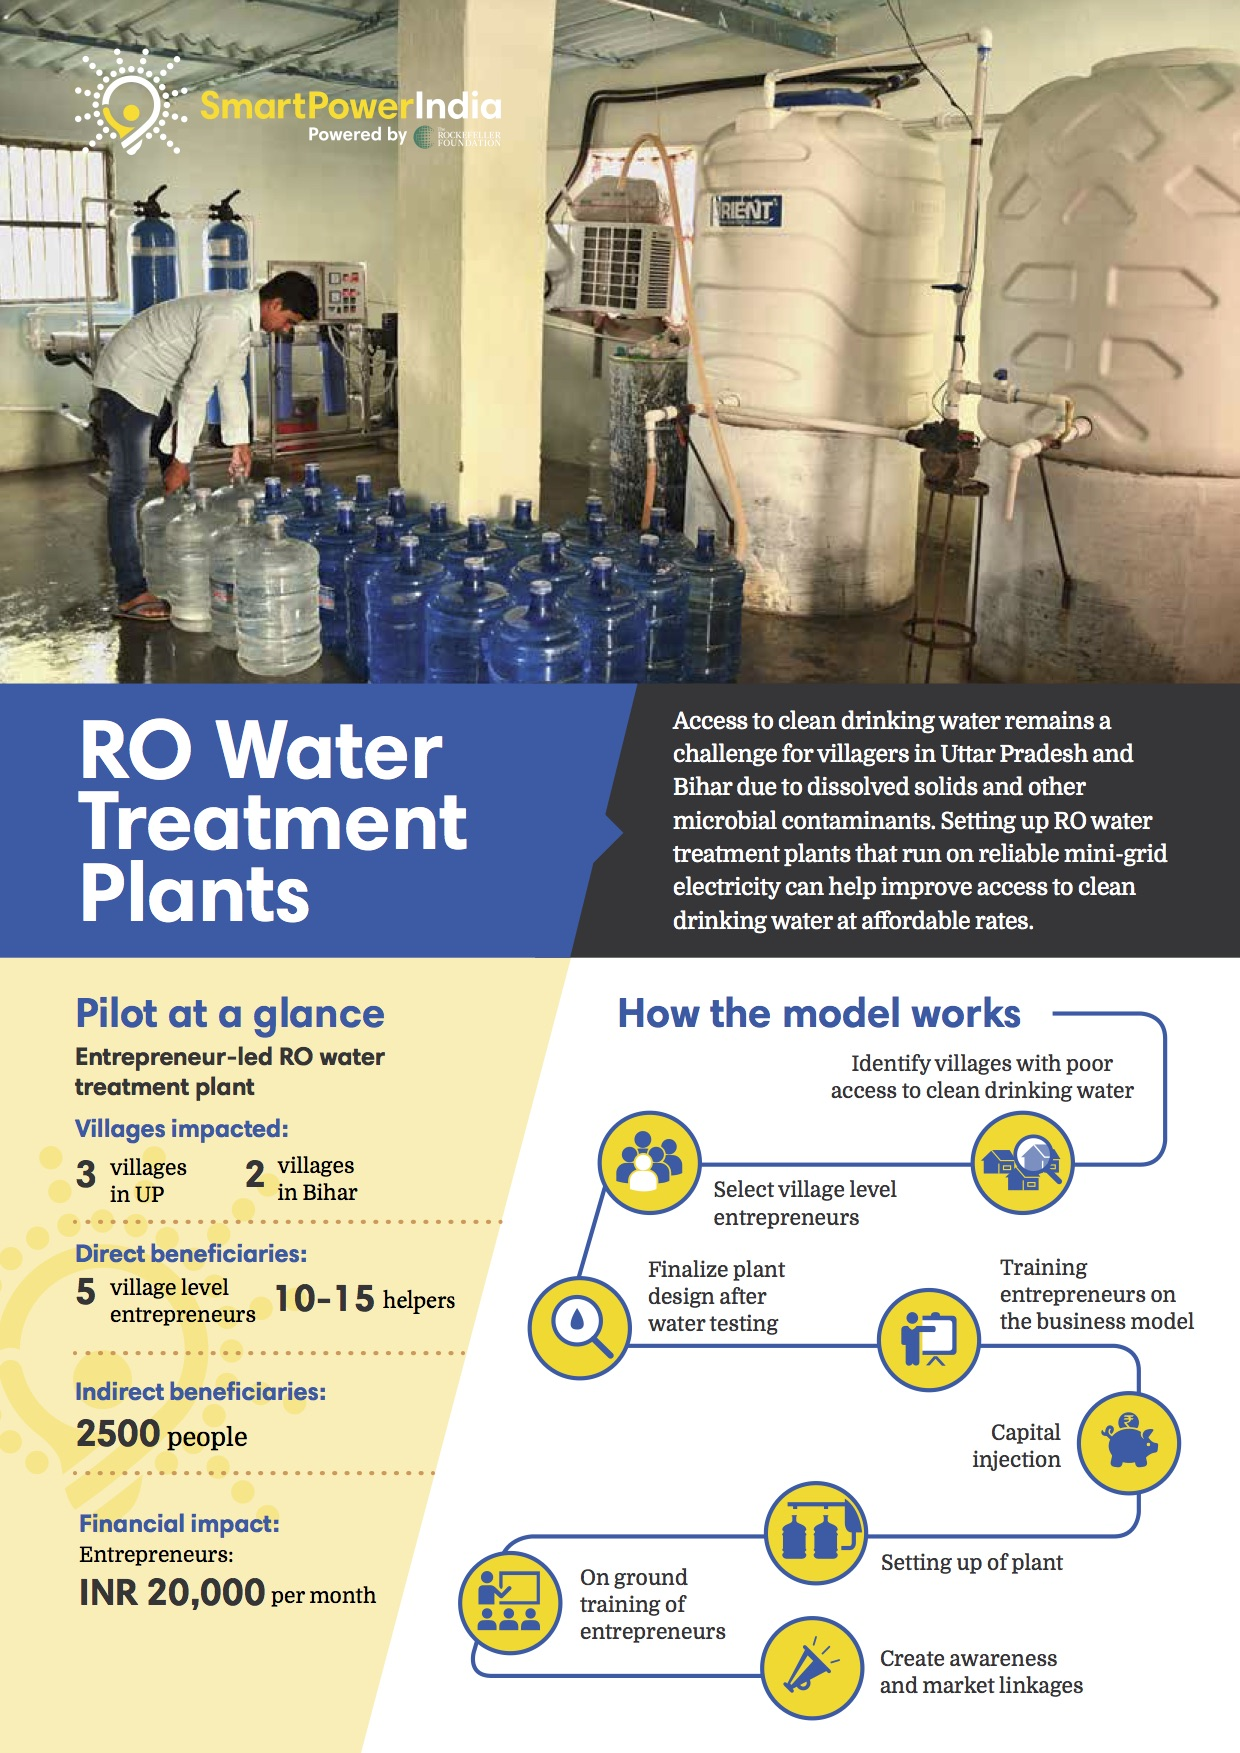 RO Water Treatment Plants in UP and Bihar